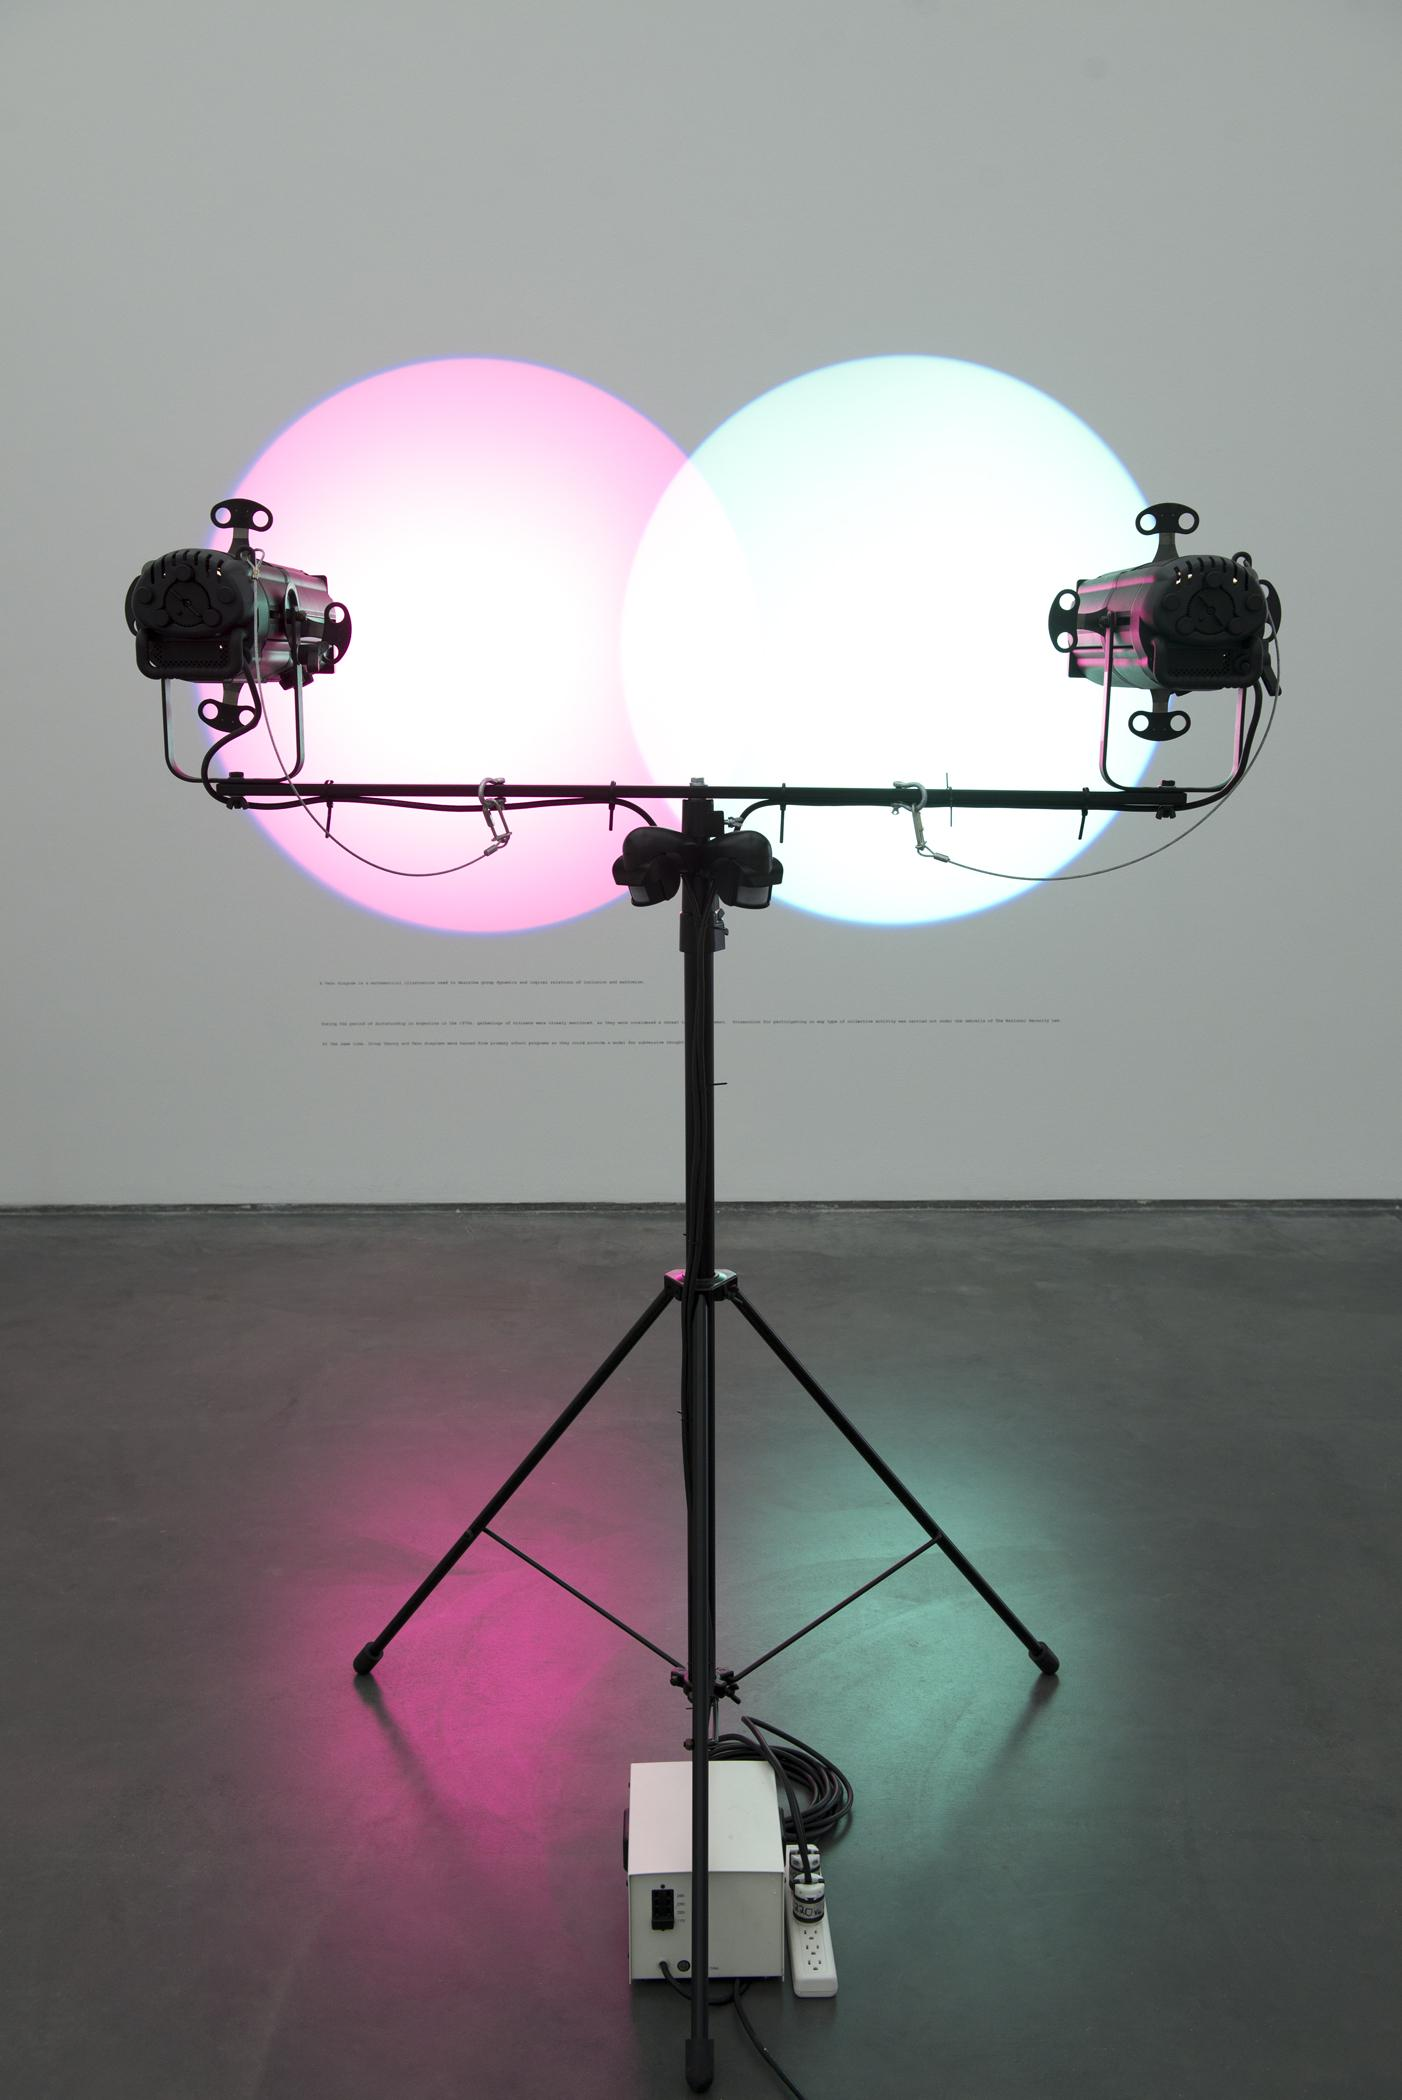 Two theatrical lights on a lightstand are pointed at a wall to create a projection of two overlapping circles, pink on the left, and teal-green on the right